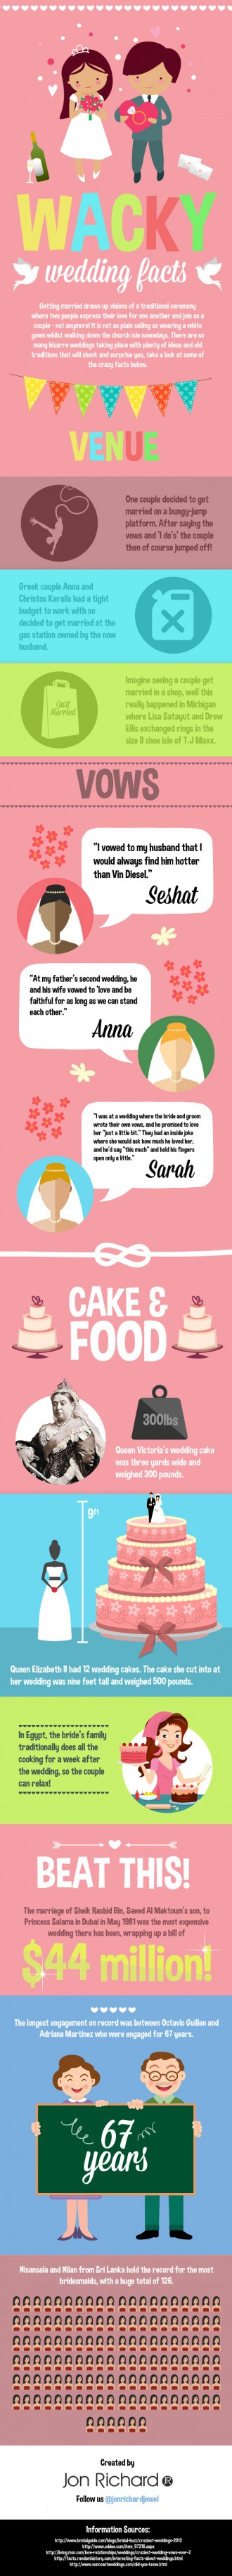 Wacky Wedding Facts,infographic,wacky wedding ideas